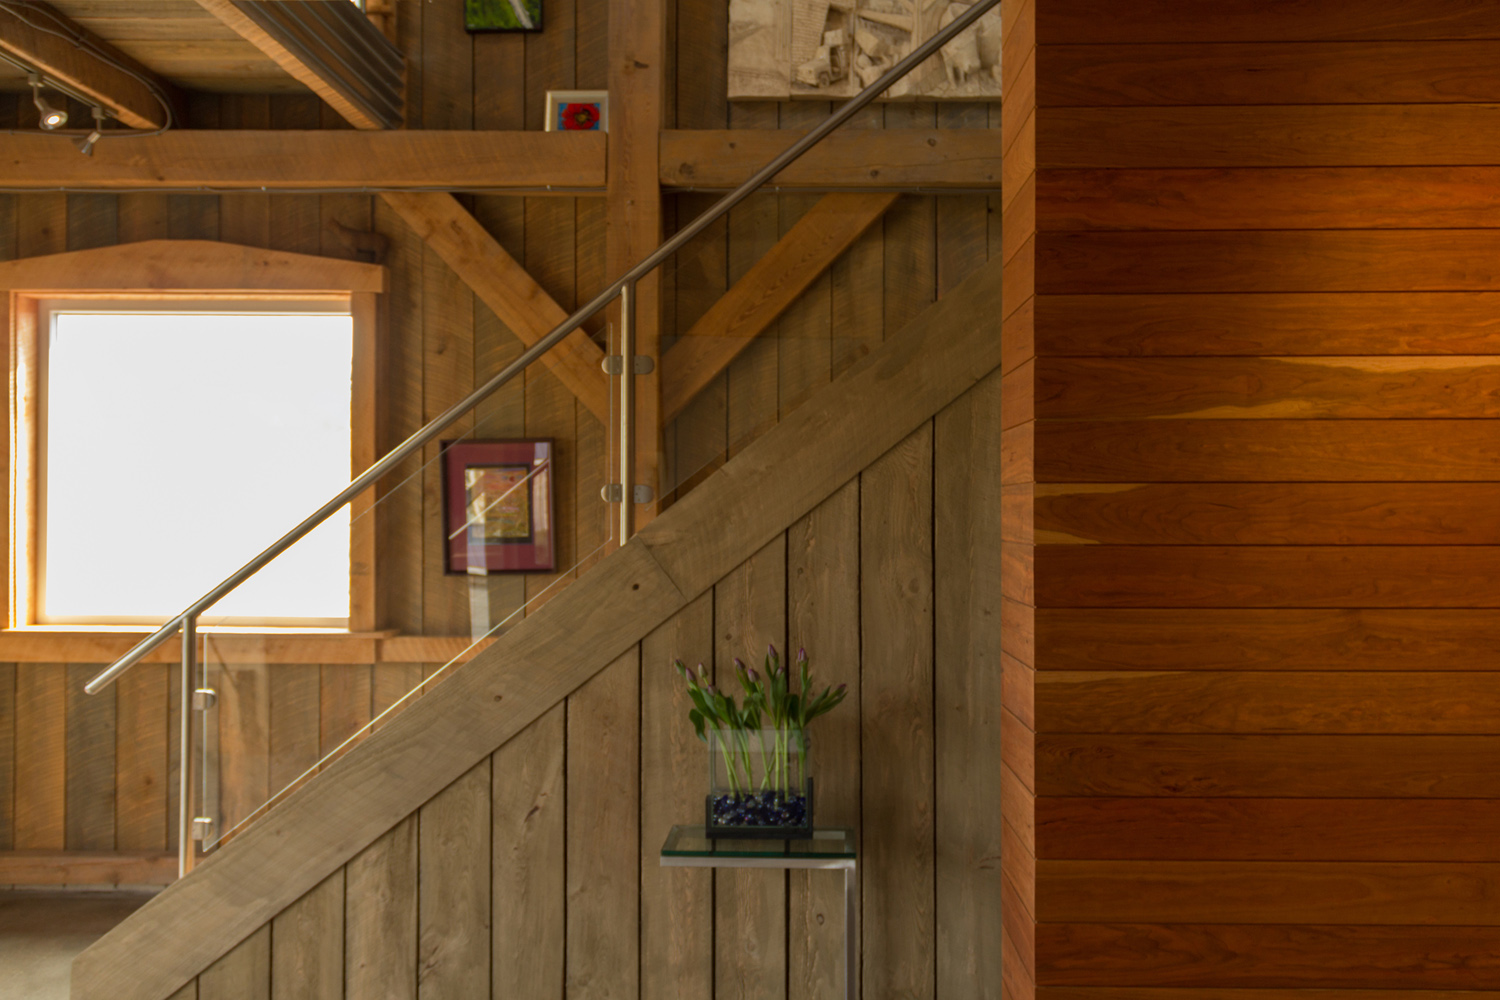 houdinidesign_ARCHITECTS_Ritchie-Gidney_Residence_Sandy-Cove_Digby_Acadian+Timber_Frame_Modern_Renovation_Stair.jpg